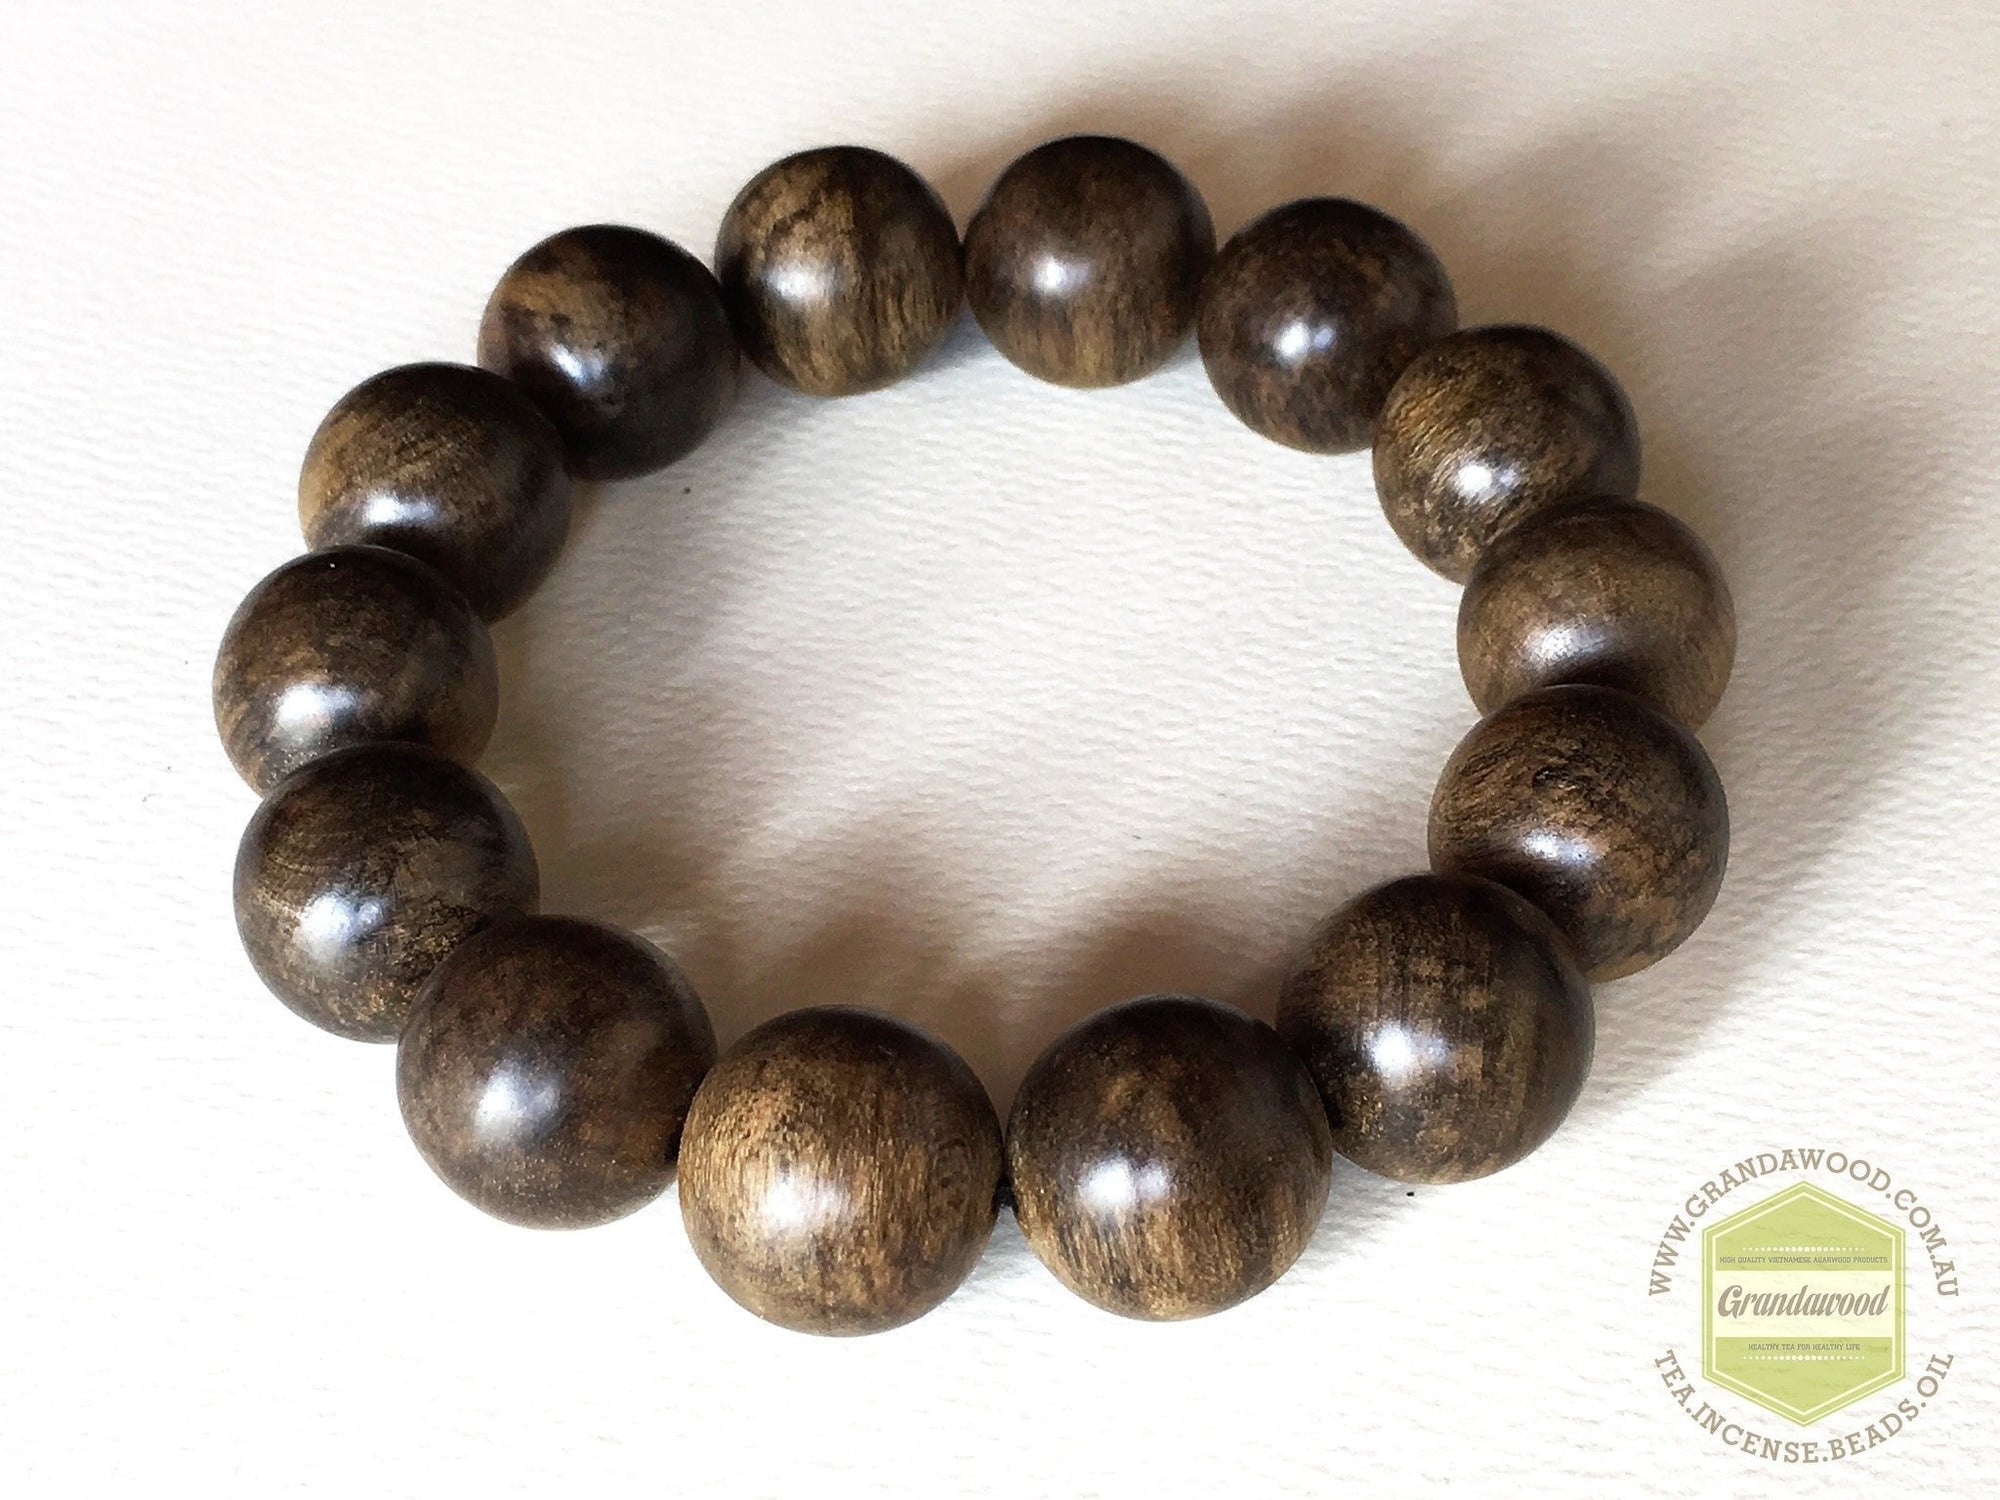 Beads The Fortunate Charm-Indonesia Borneo Wild Dark Bracelet circa 27g